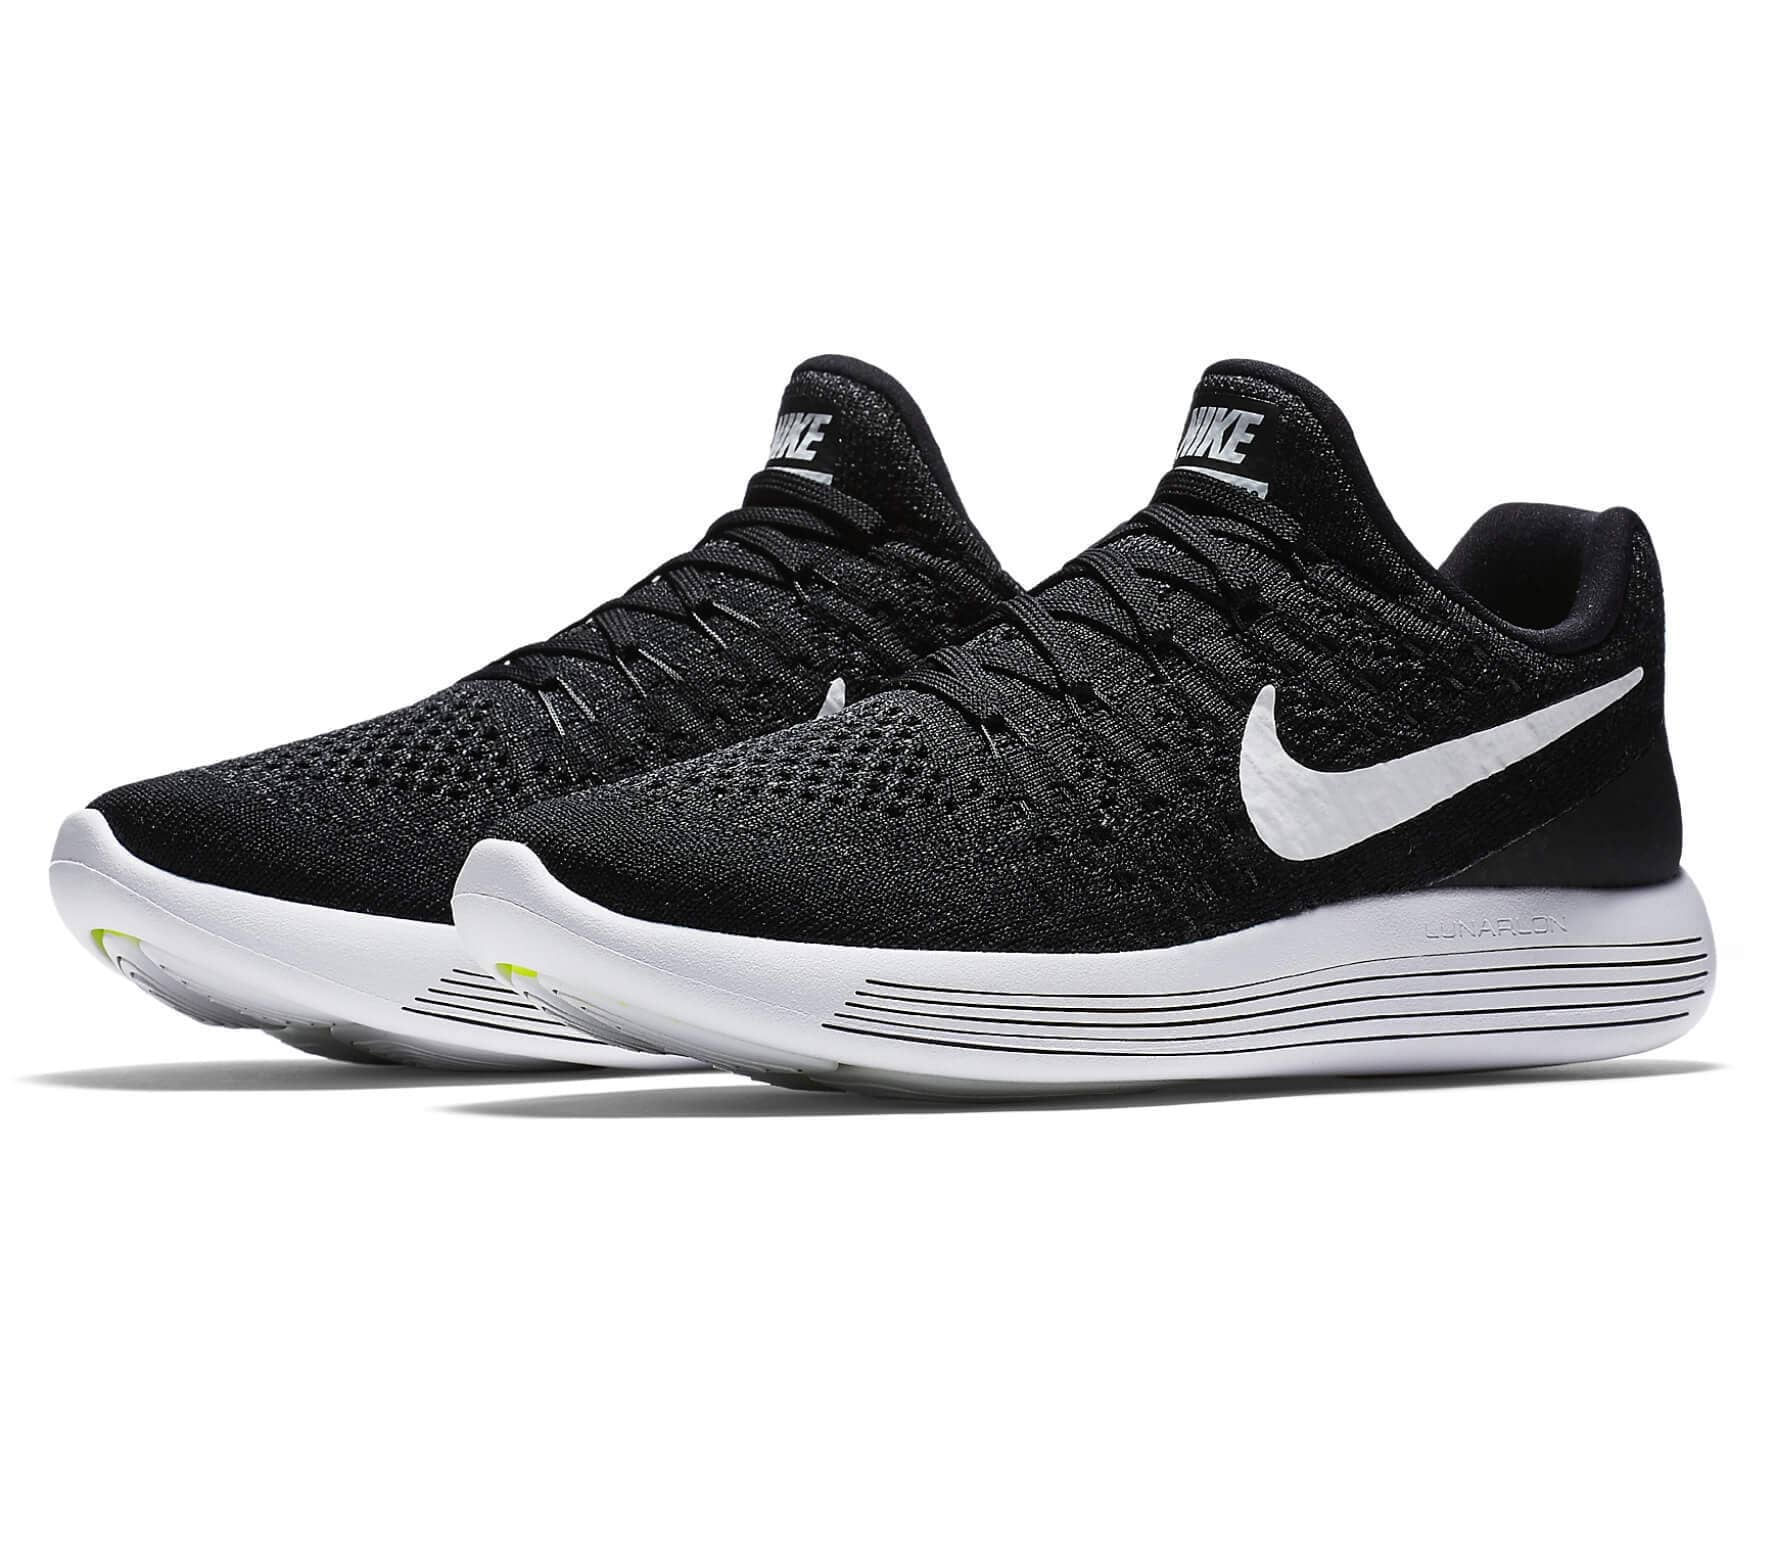 d2b2324f4 Nike - Lunar Epic Low Flyknit 2 women s running shoes (black white ...